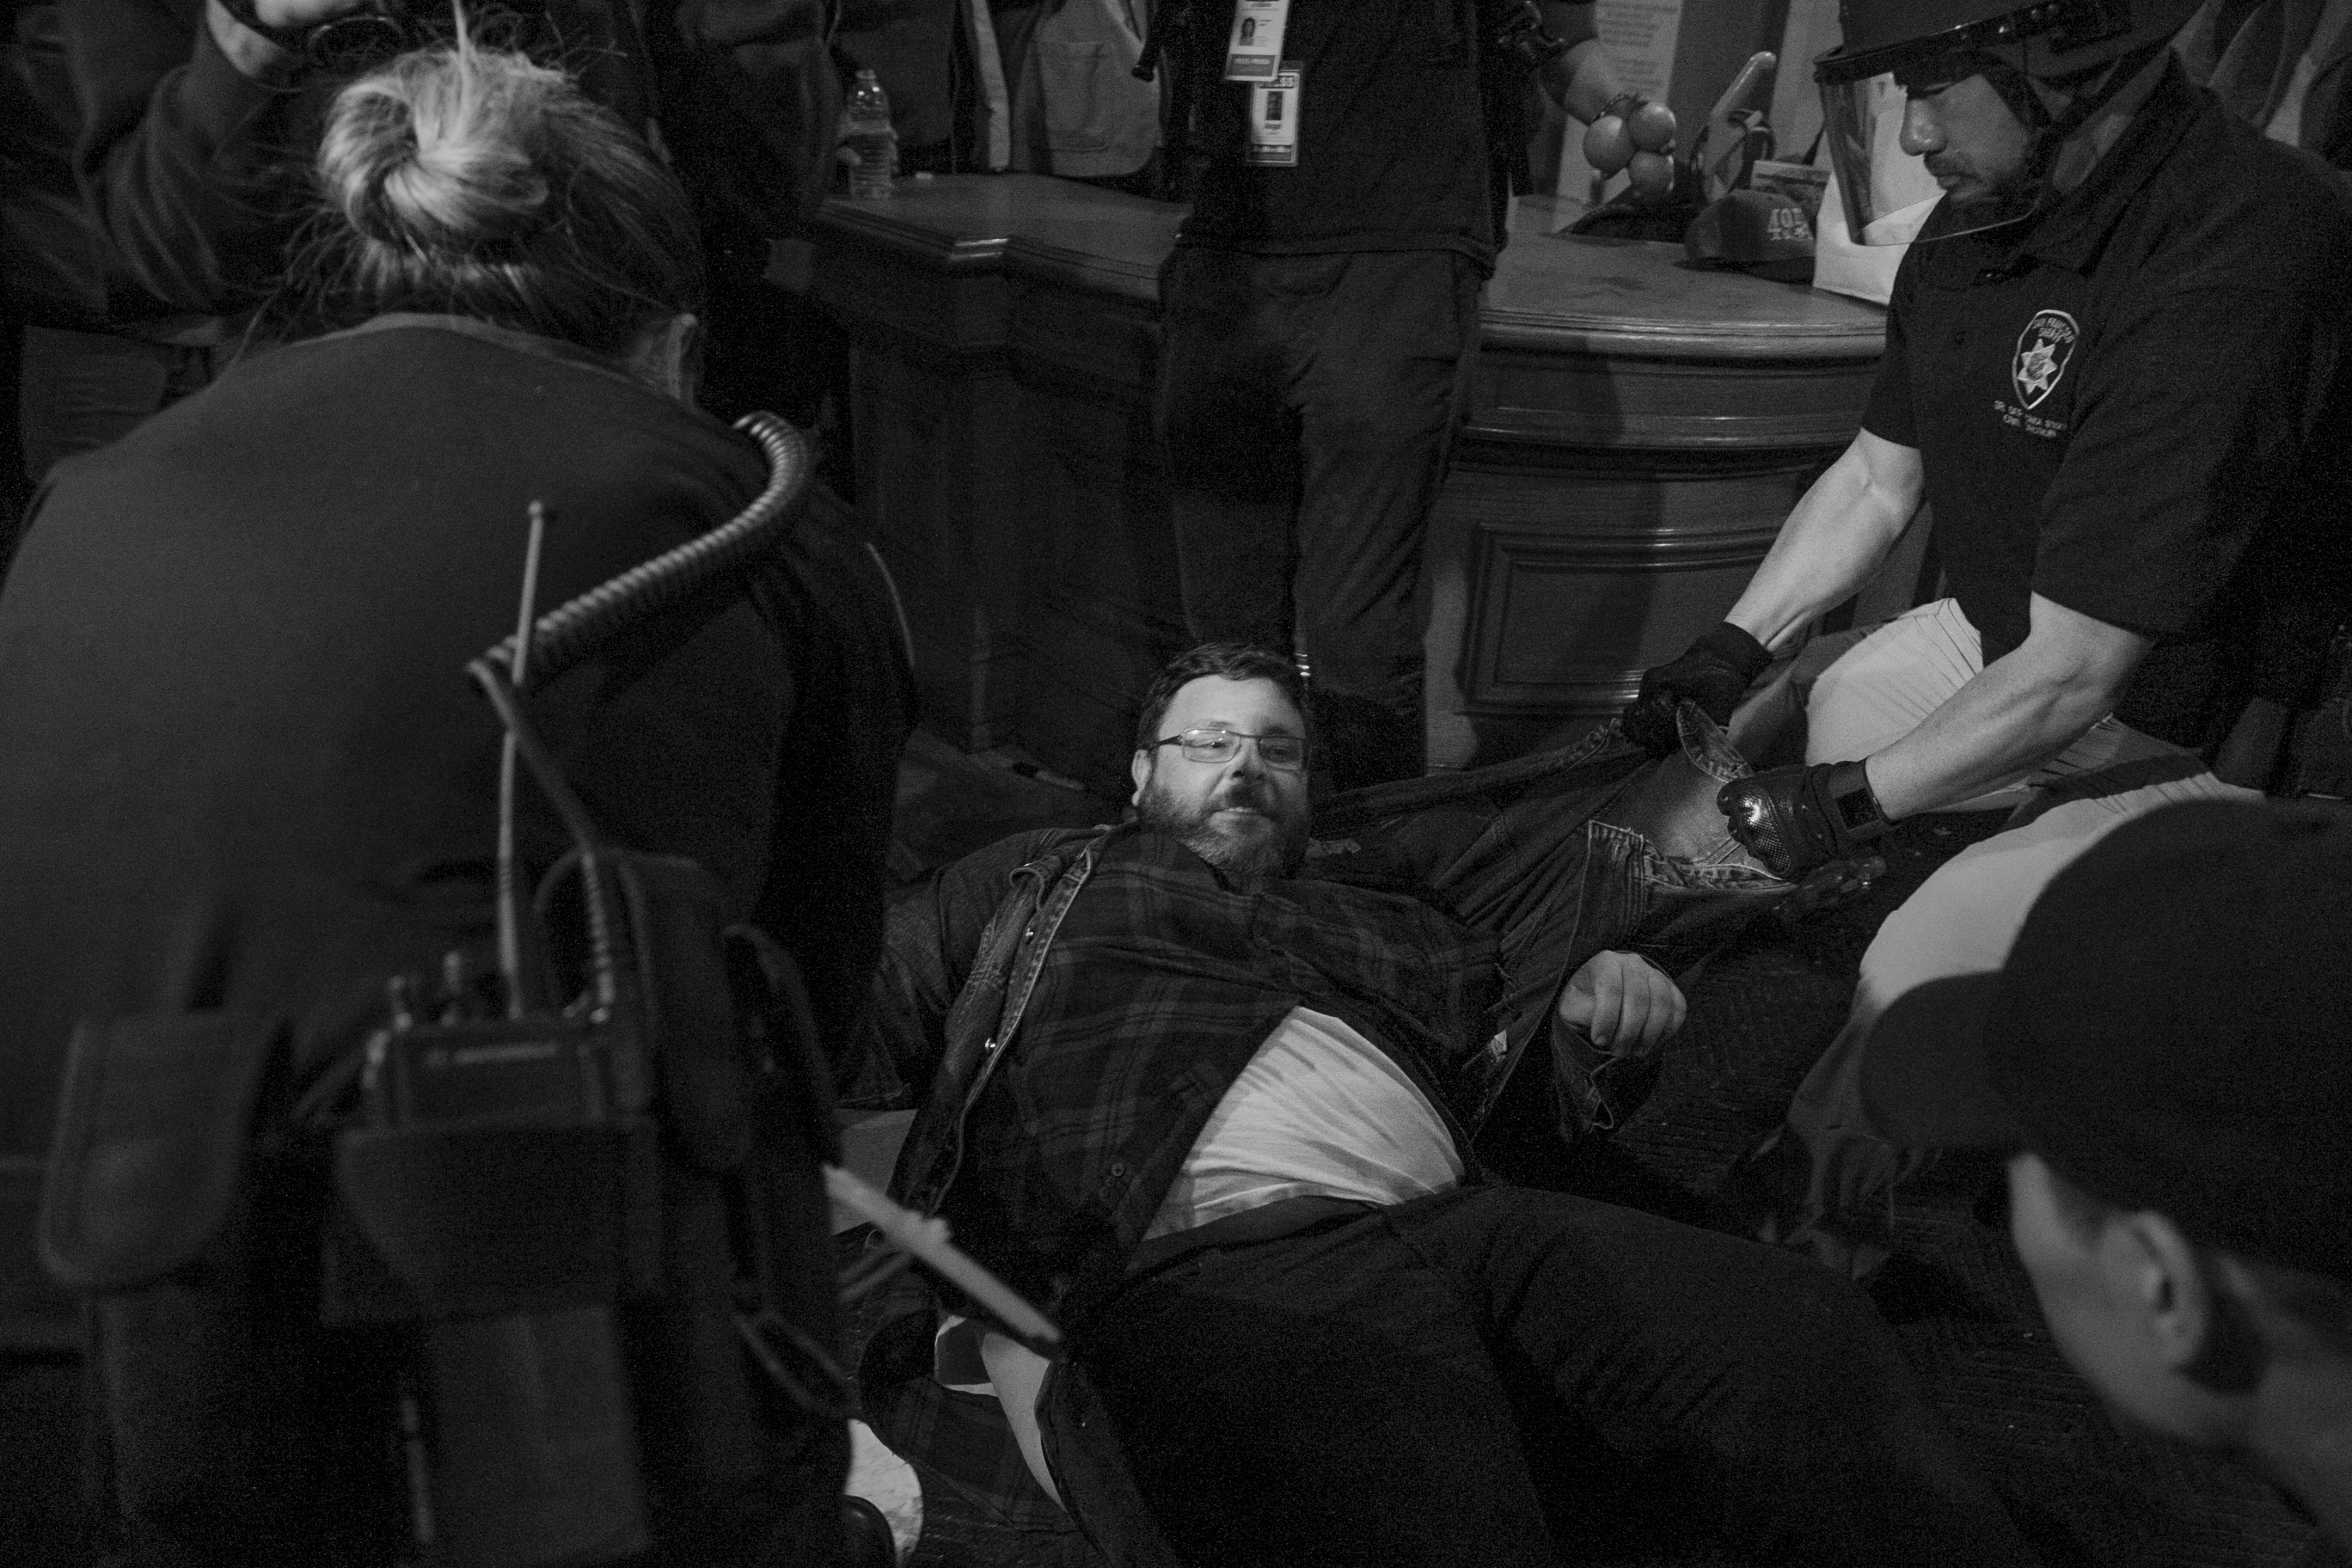 A protester is arrested and dragged across the floor during a Hunger for Justice SF after hours occupation of City Hall last night. 33 people were arrested. Protesters demanded action against police brutality and for SFPD Chief Suhr to be fired. (Photo by Gabriella Angotti-Jones)